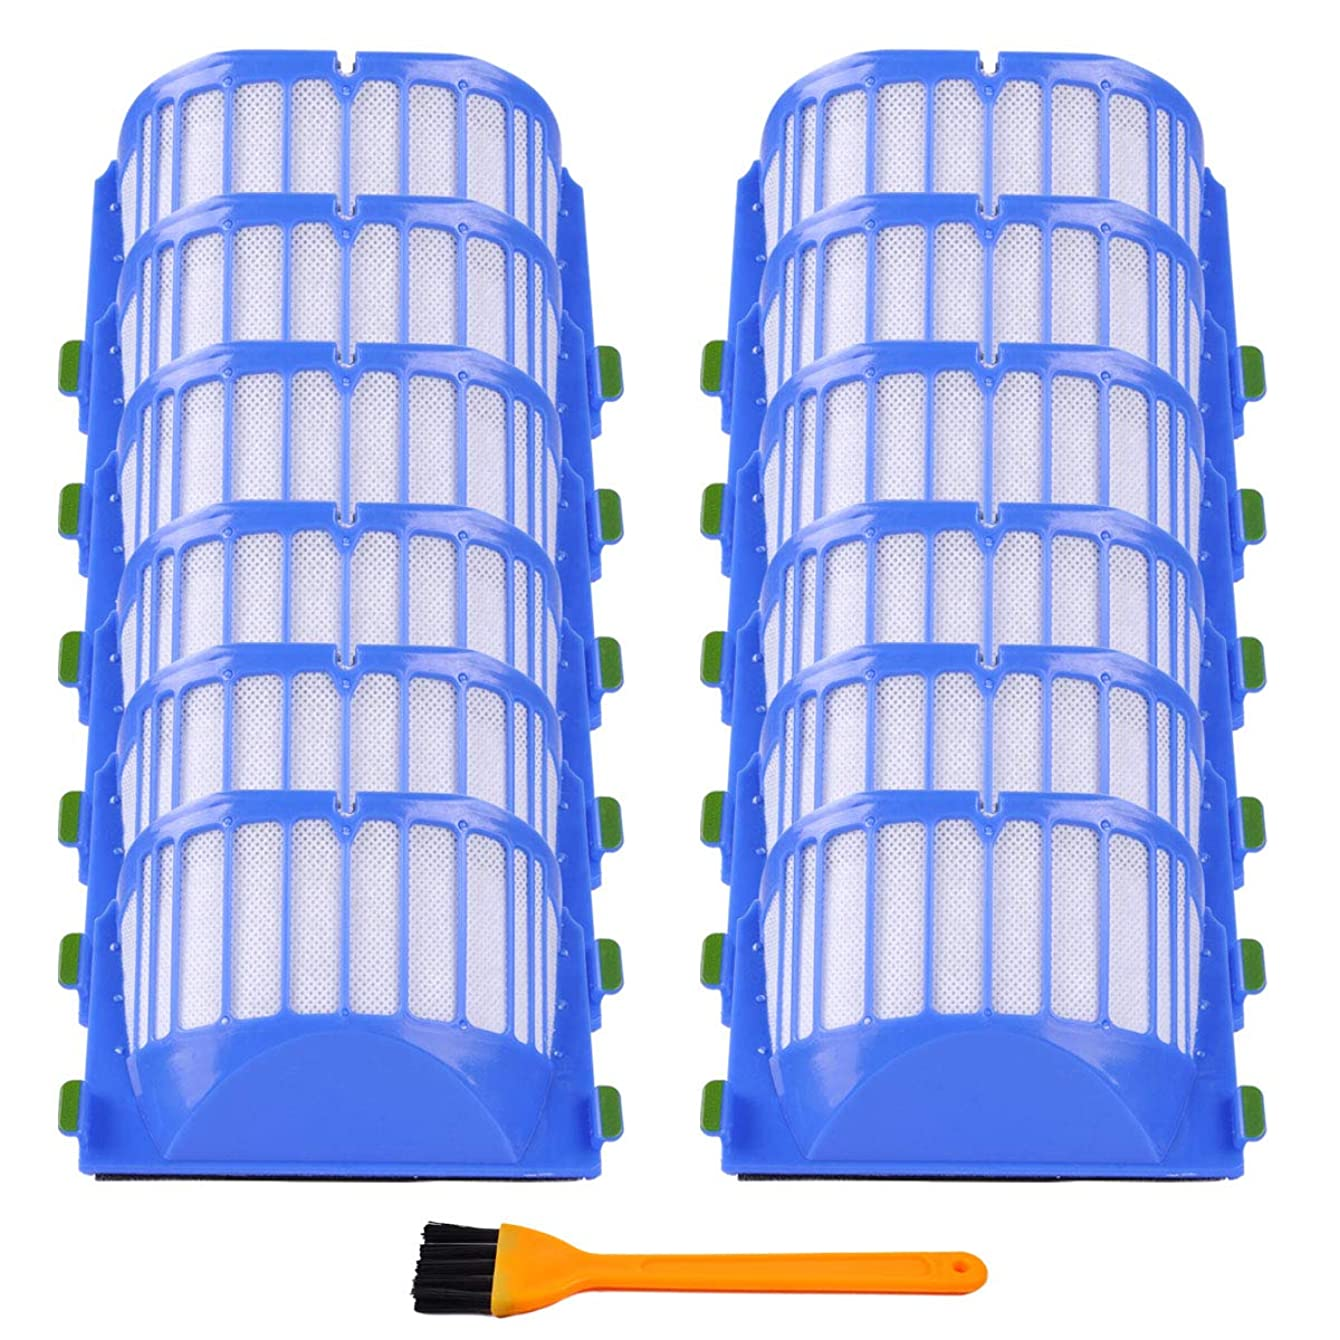 KEEPOW 12 Pcs Replacement Parts Aero Vac Filters for iRobot Roomba 500 600 Series 550 595 614 620 630 650 655 660 665 671 675 680 690 Vacuum Accessory